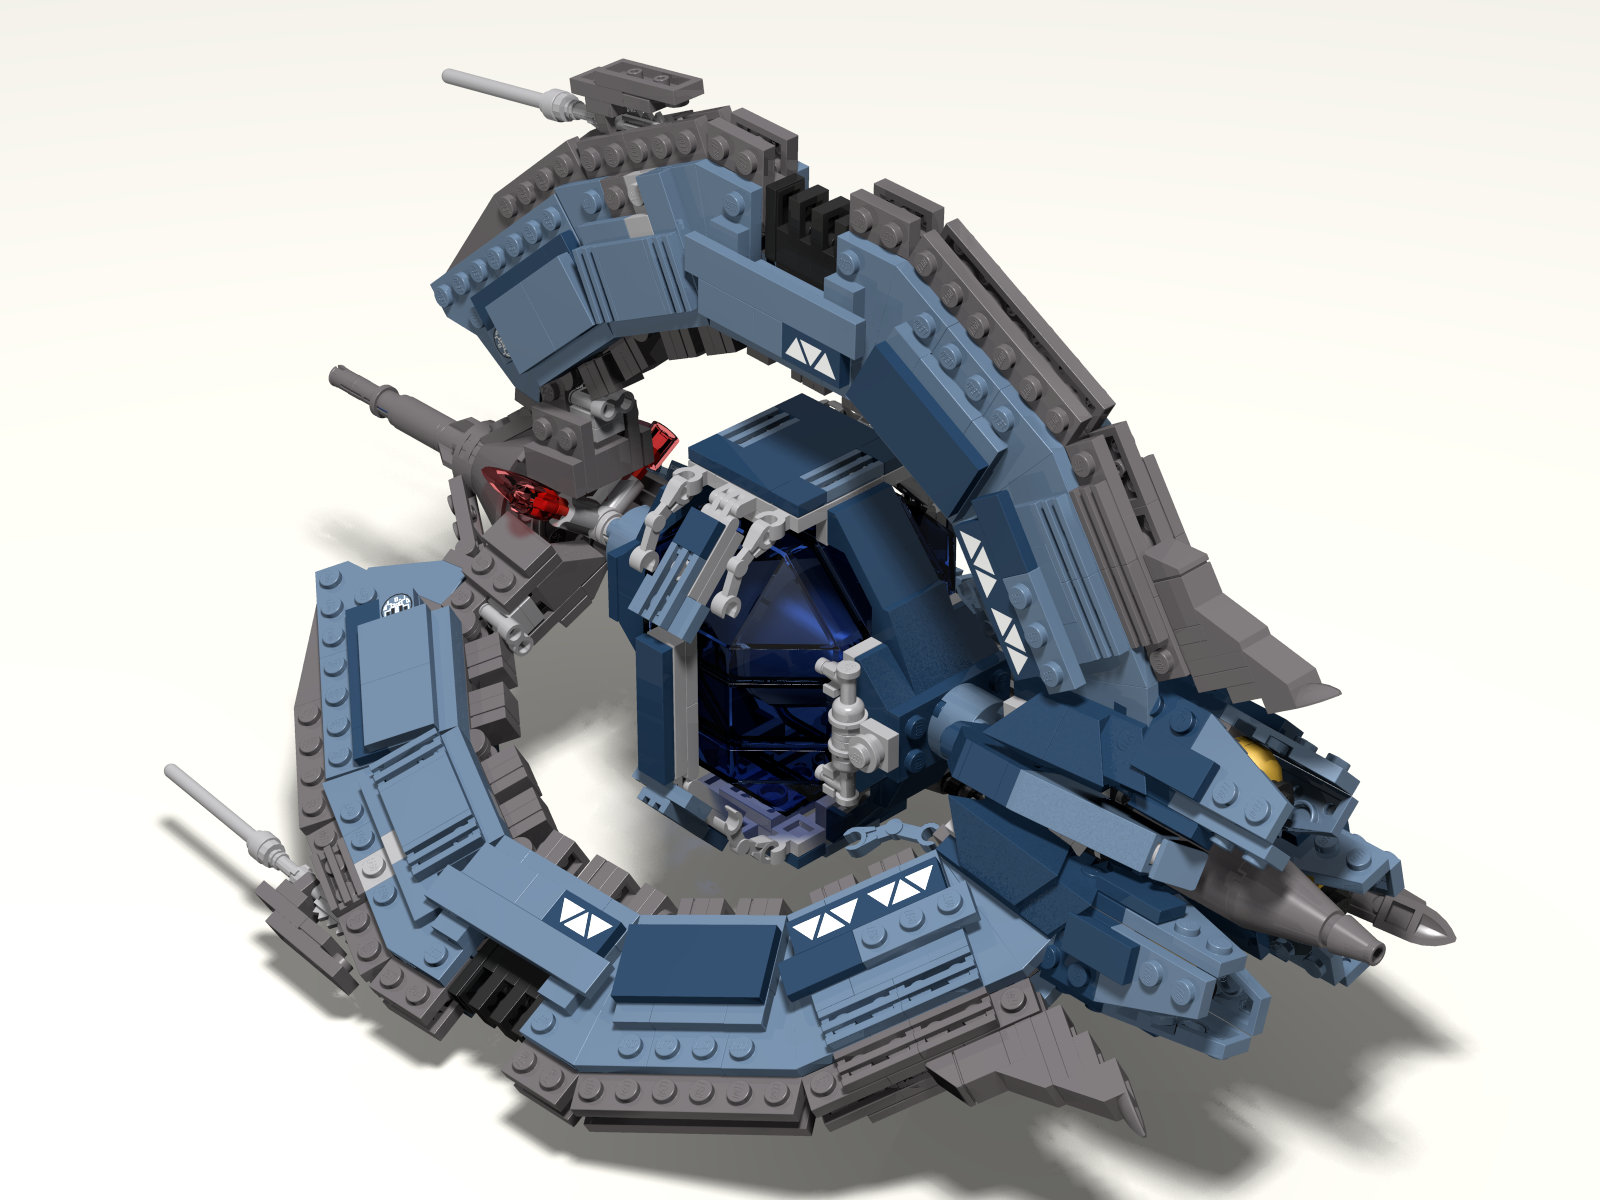 droid_tri-fighter_04.jpg